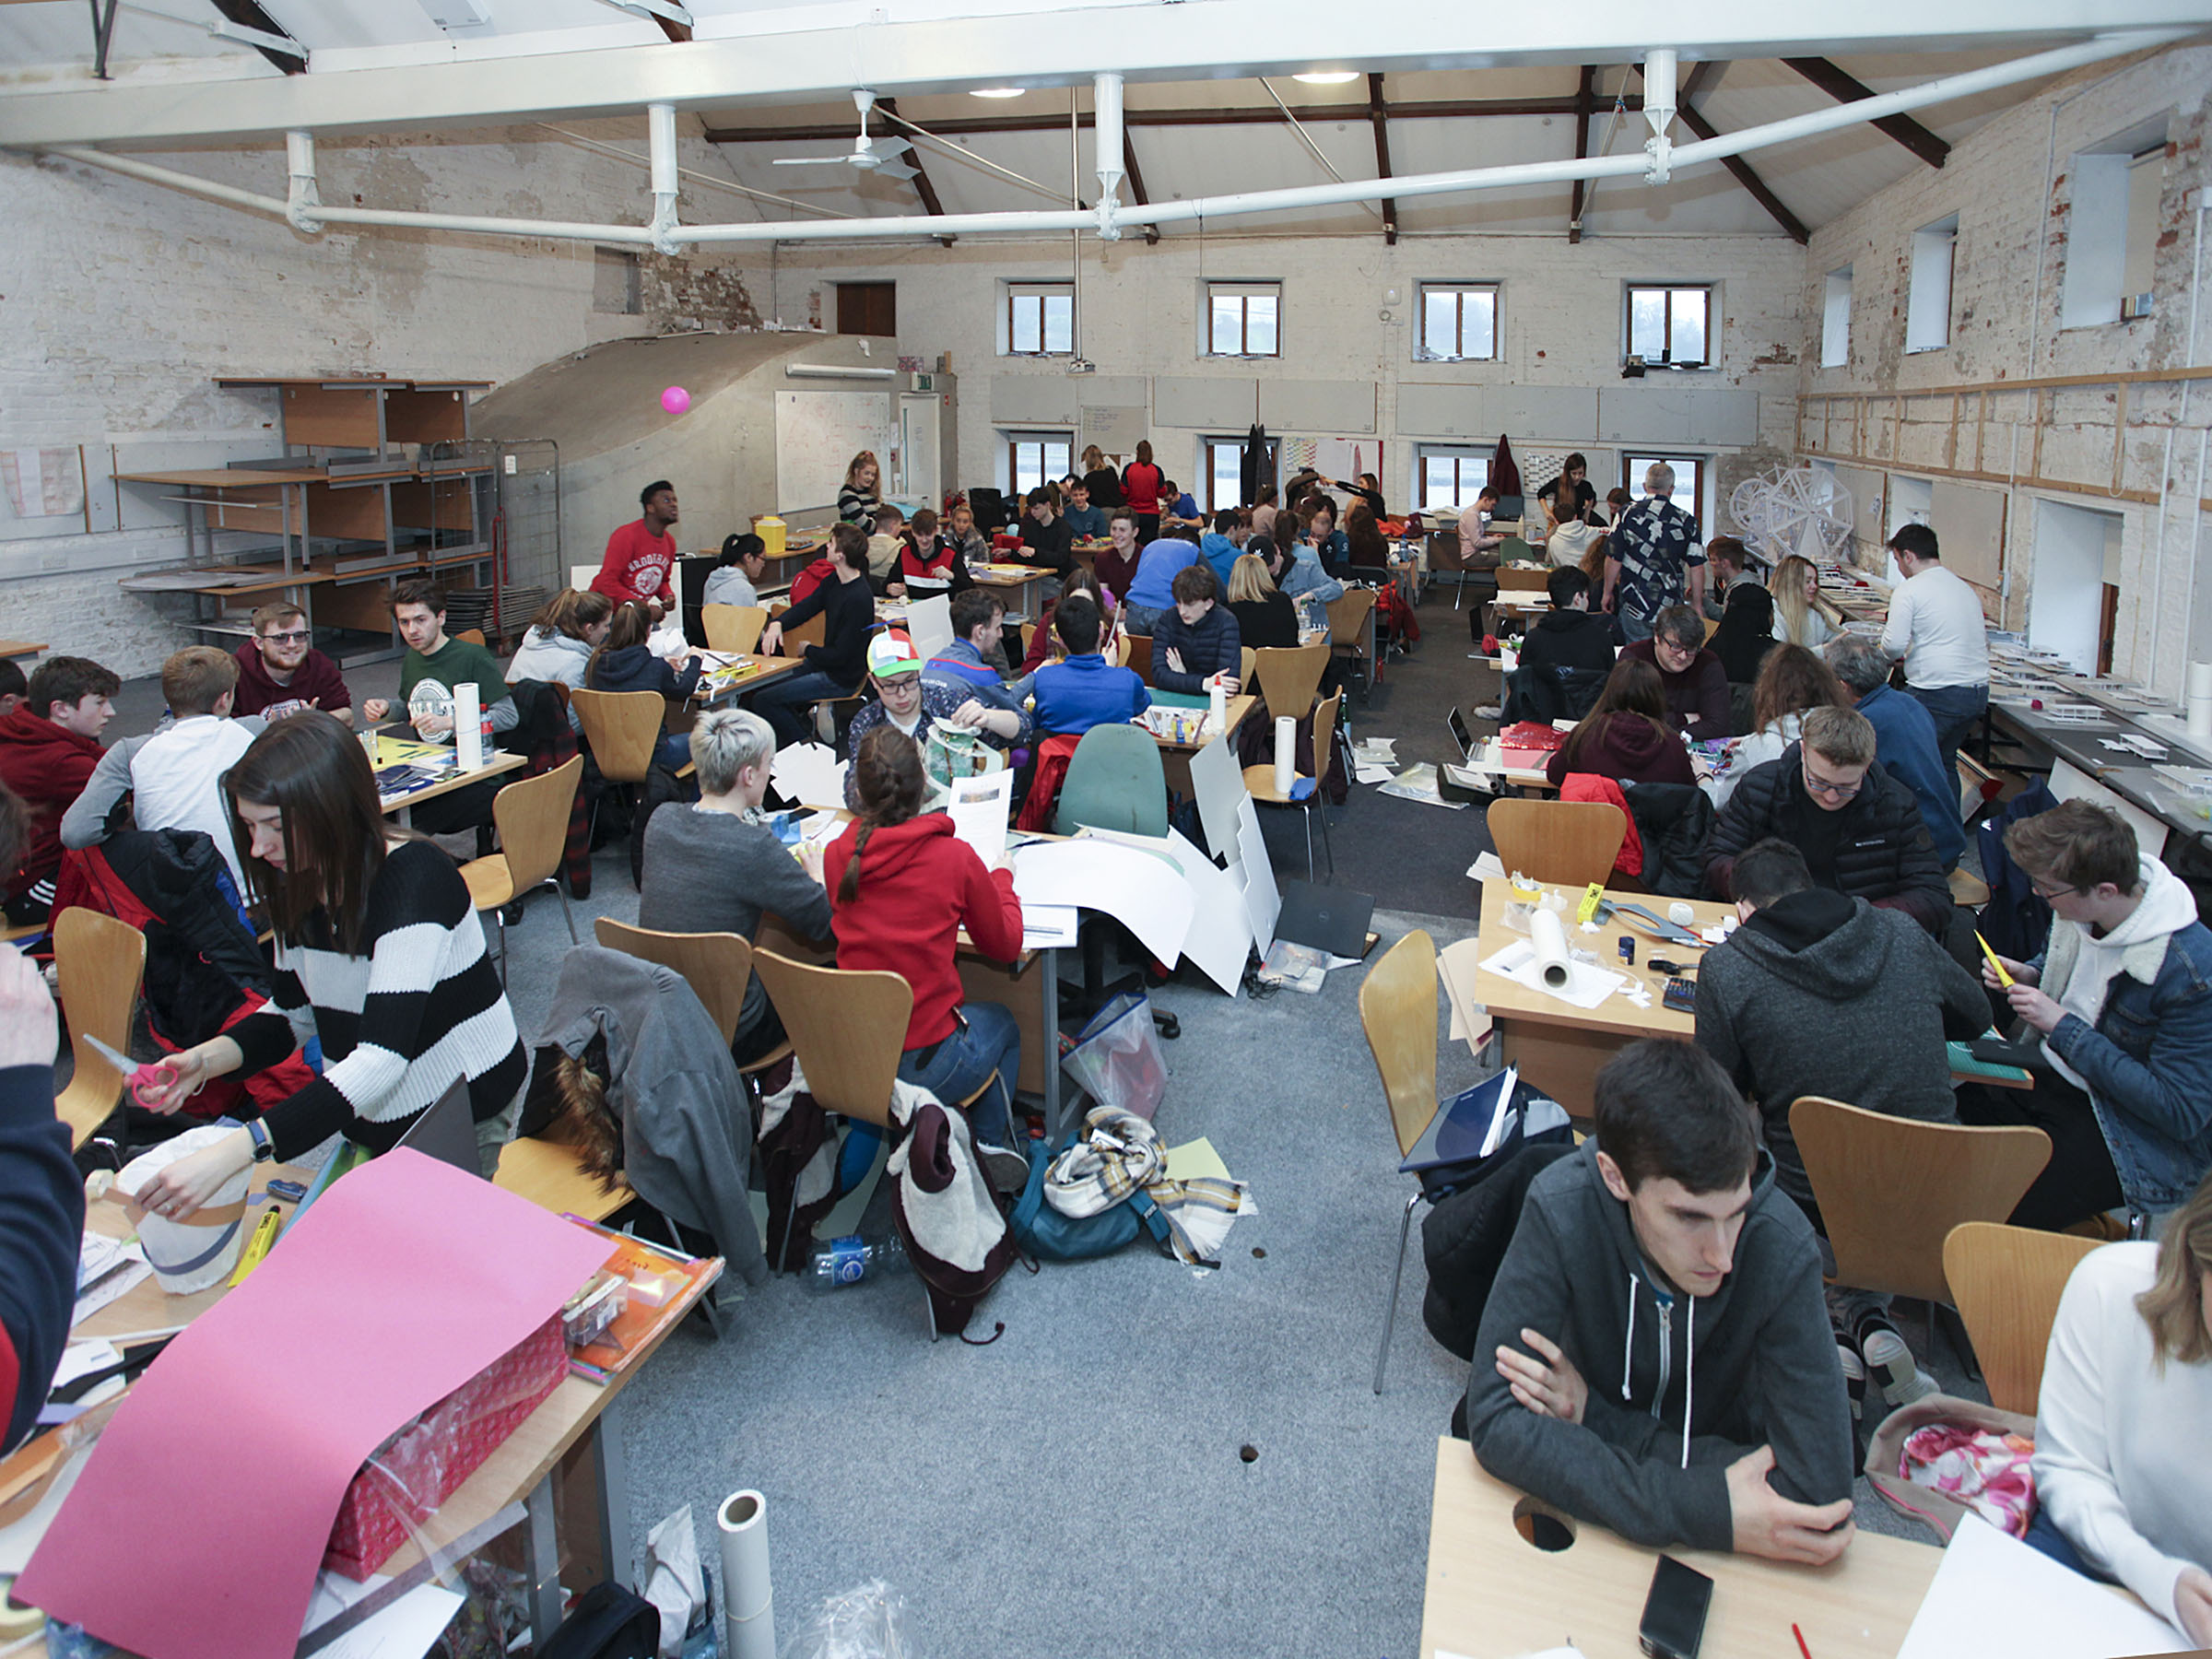 Second level students in one of the studios at the Granary